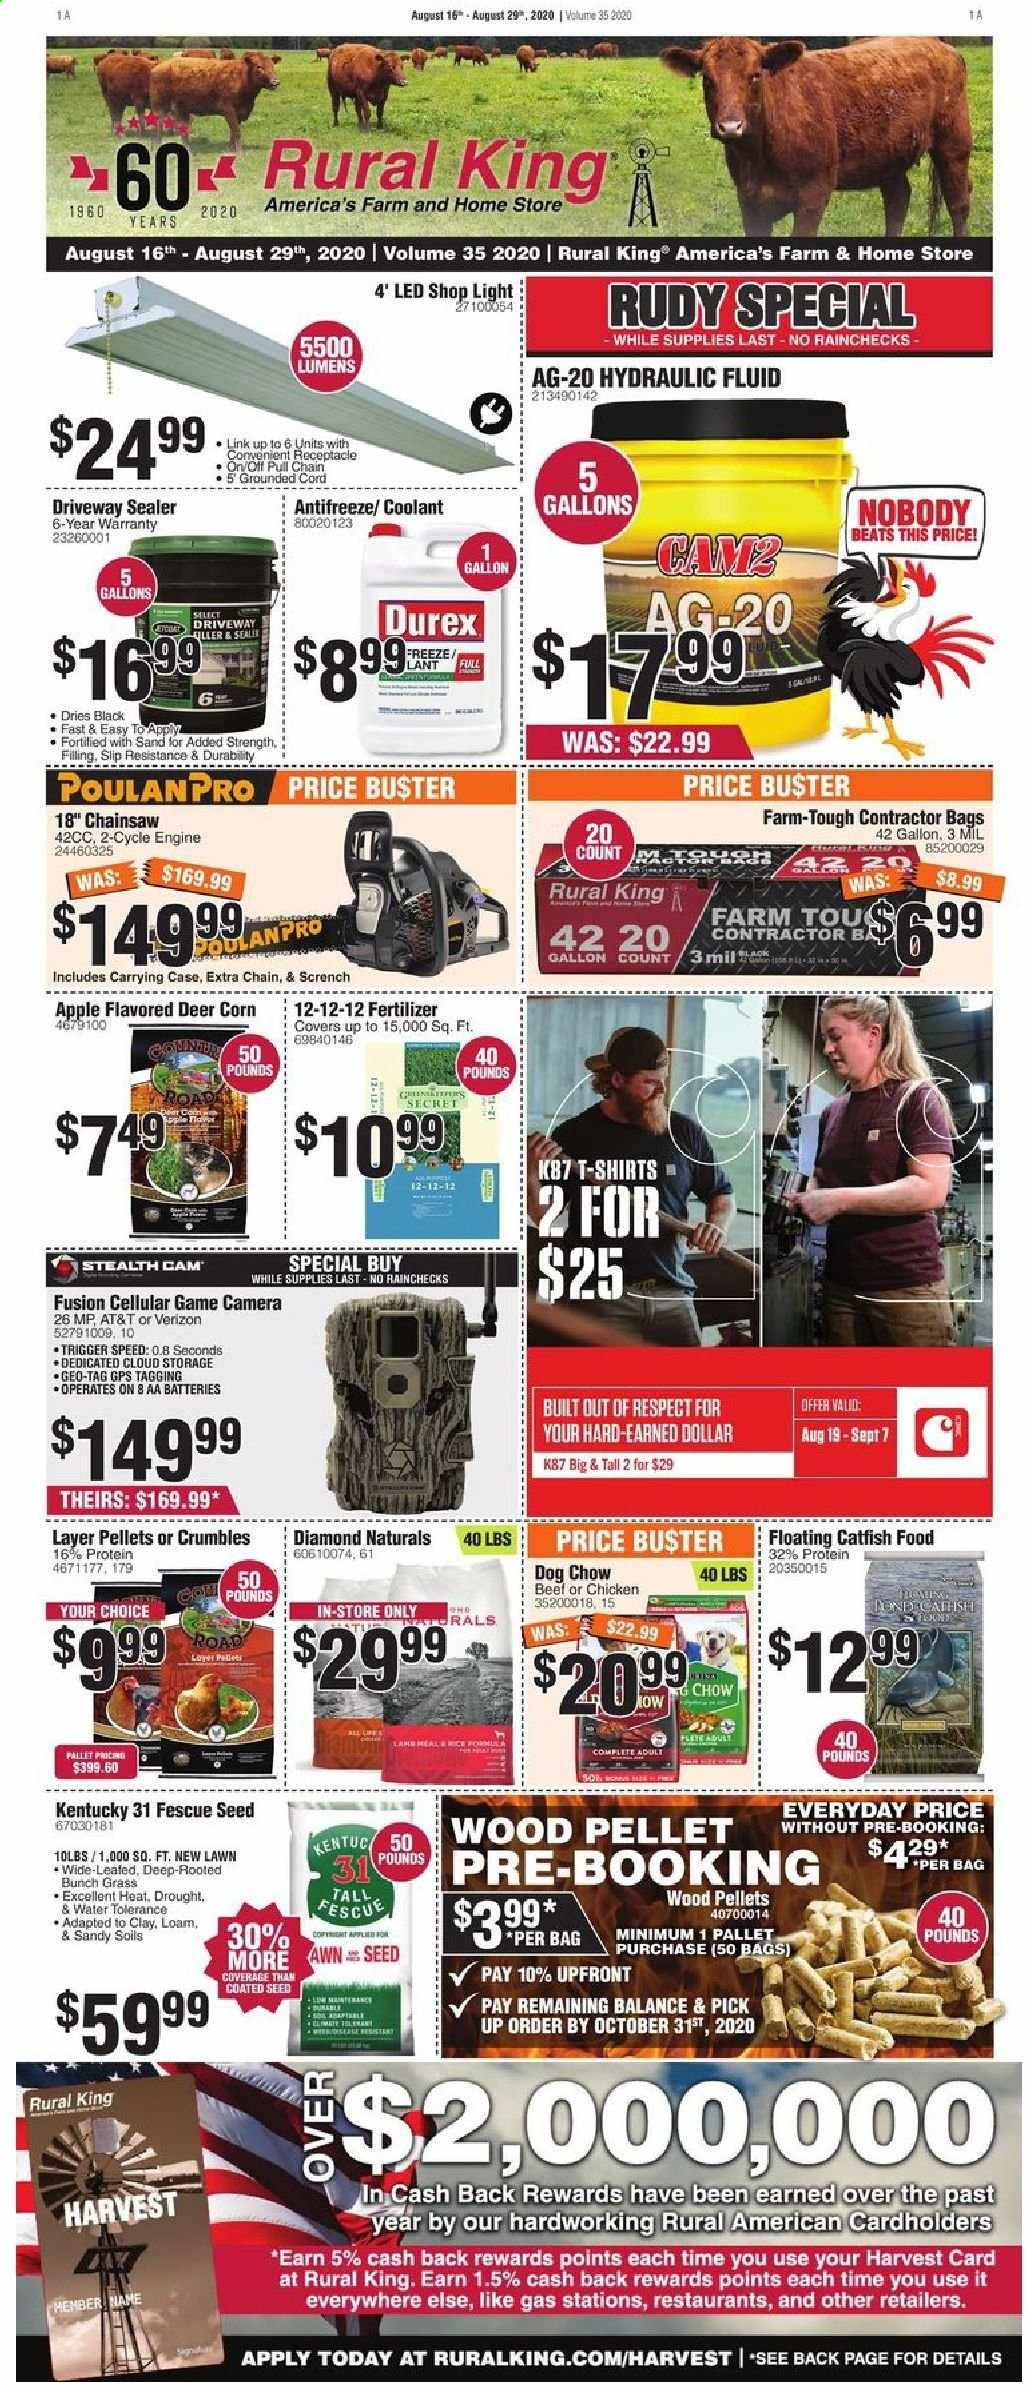 Rural King Flyer - 08.16.2020 - 08.29.2020 - Sales products - apples, bag, beef meat, camera, case, catfish, corn, deer, dog chow, fluid, game cam, gps, lamb meat, rice, secret, shirt, stealth cam, protein, chicken, chow, game, pellet, seed, lamb, apple, aa batteries, beats, led. Page 1.